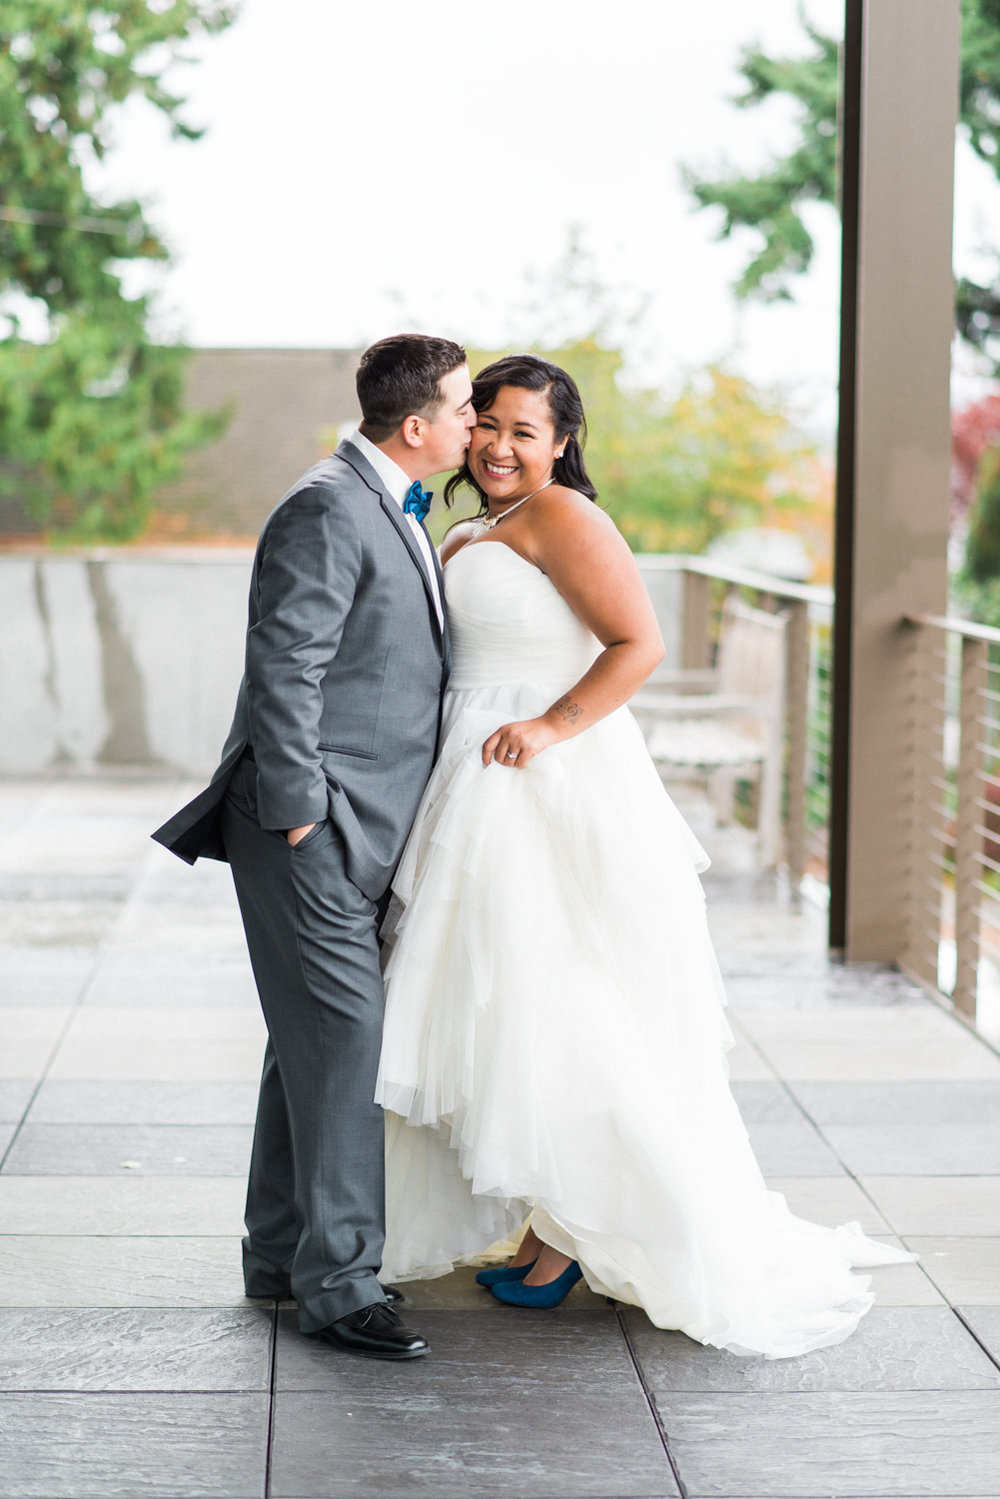 seattle-wedding-rosehill-community-center-shelley-marie-photo-1